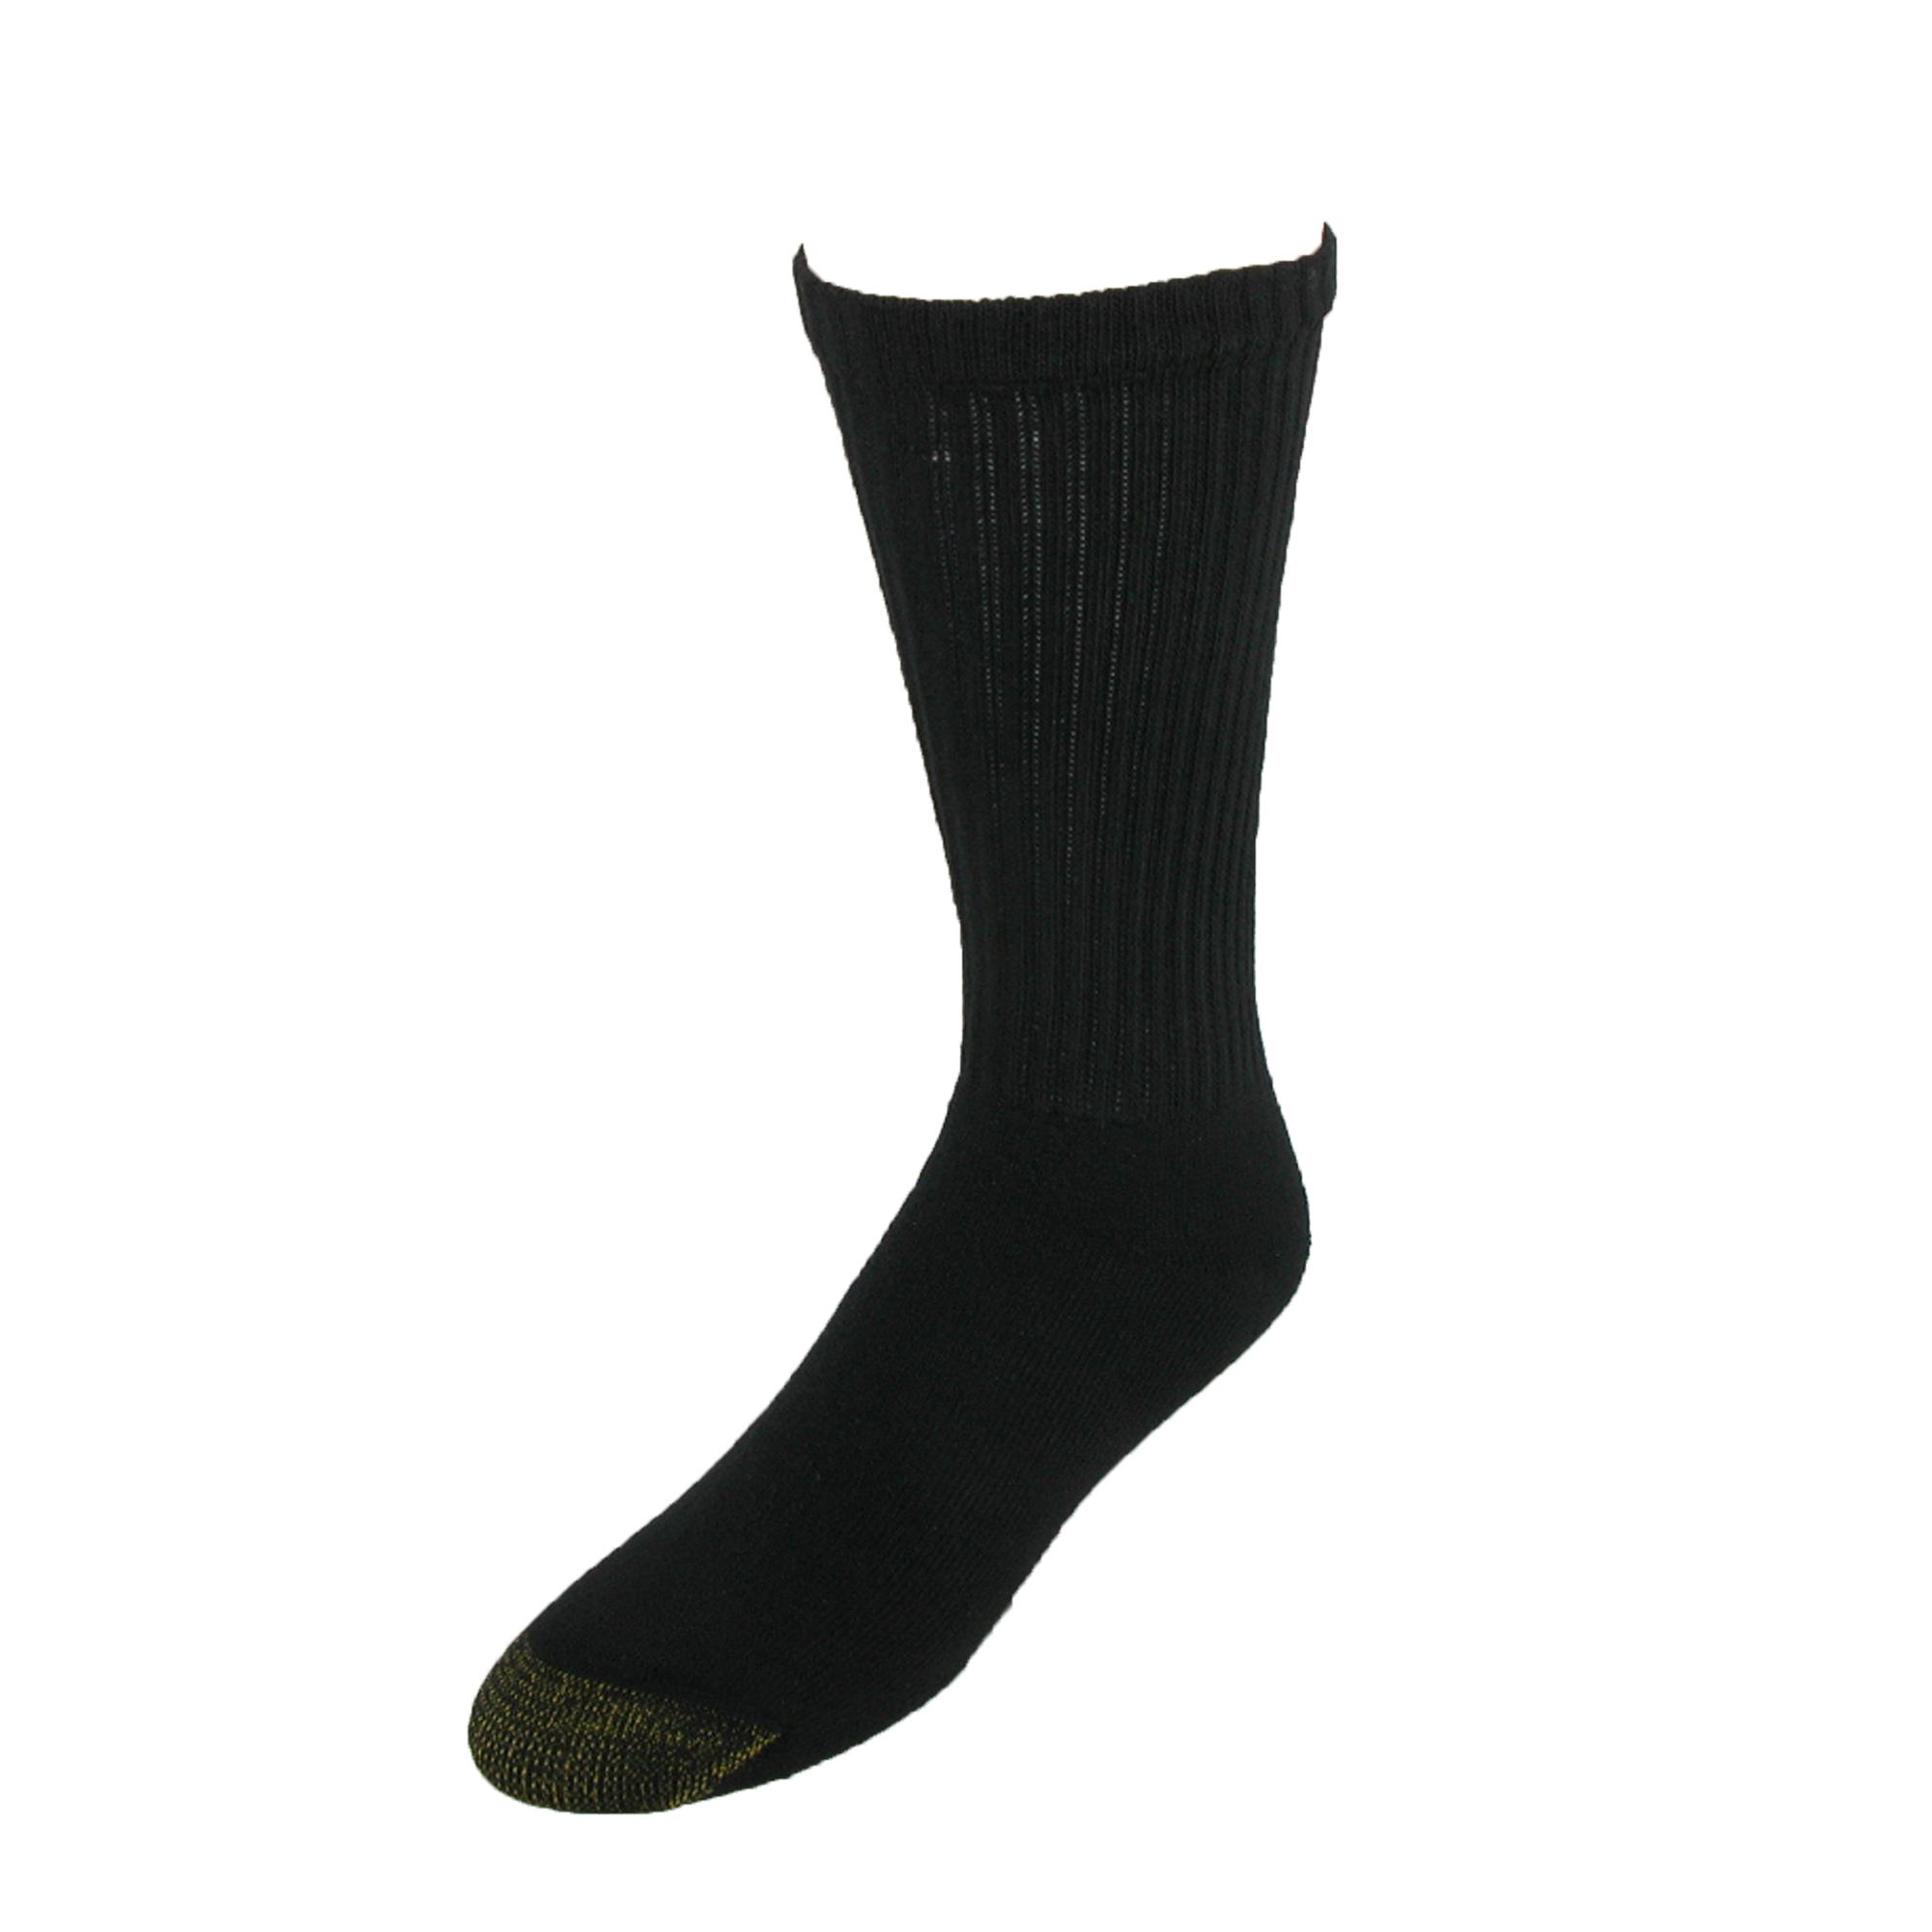 Gold_Toe_Mens_Cotton_Cushioned_Crew_Socks_Pack_of_6___Shoe_Size_6